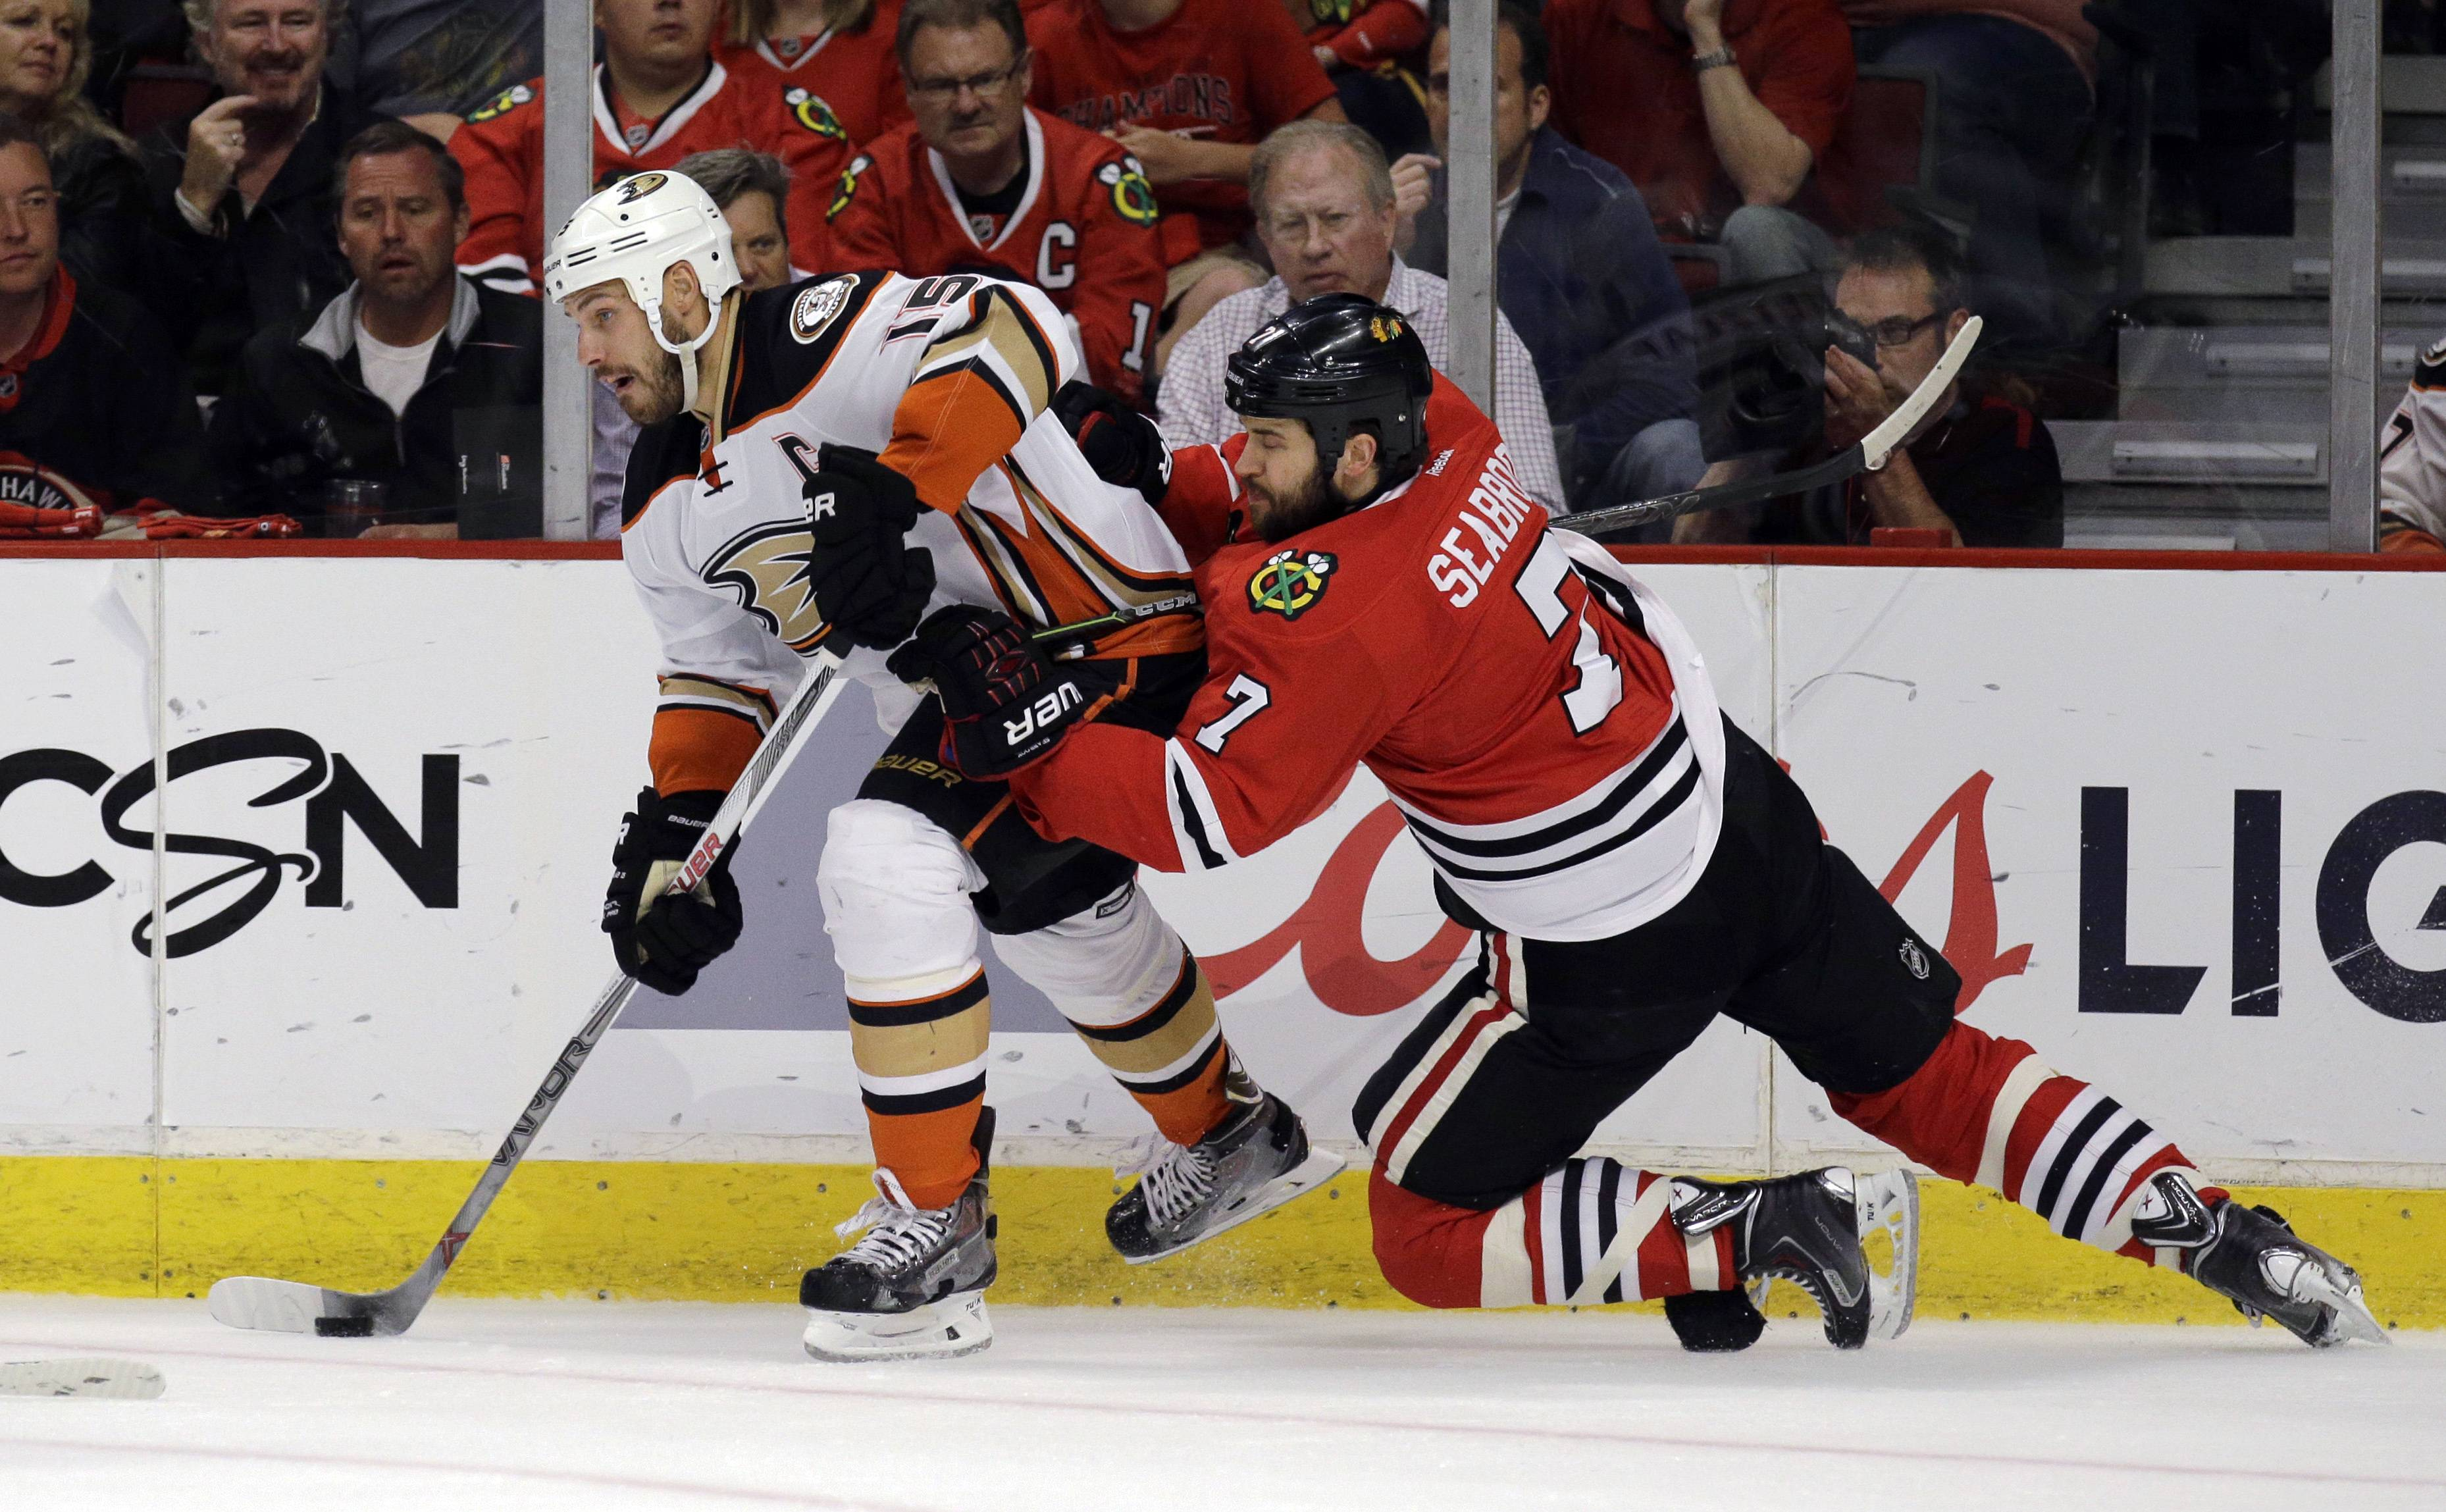 Blackhawks defenseman Brent Seabrook defends Ducks center Ryan Getzlaf during Saturday's Game 4 at the United Center.